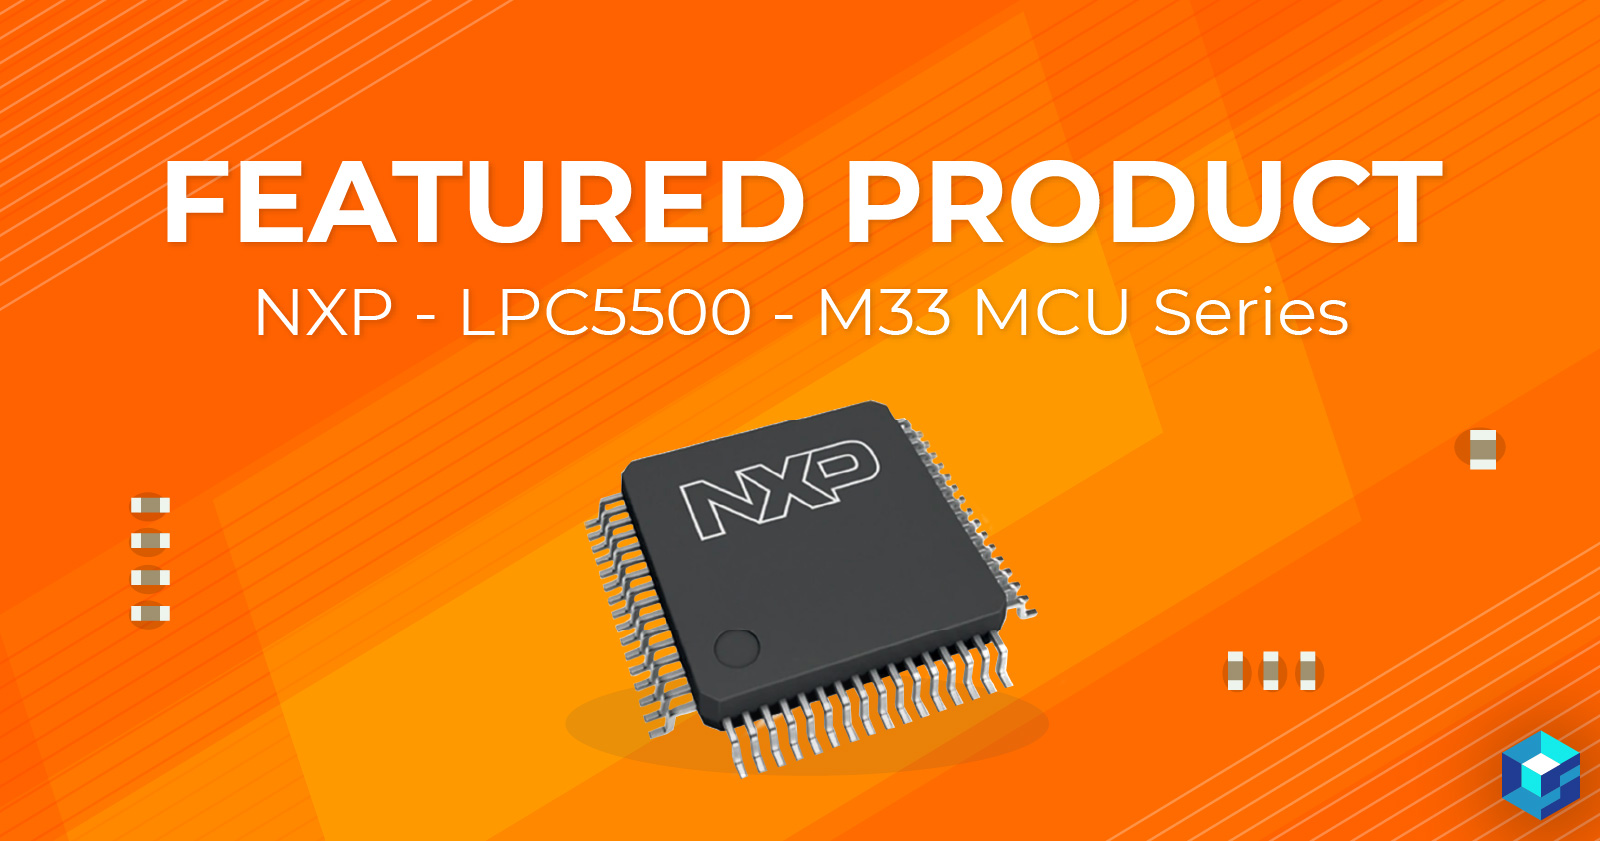 NXP's LPC5500 featured product at Sourcengine, the largest e-commerce marketplace for electronic components.